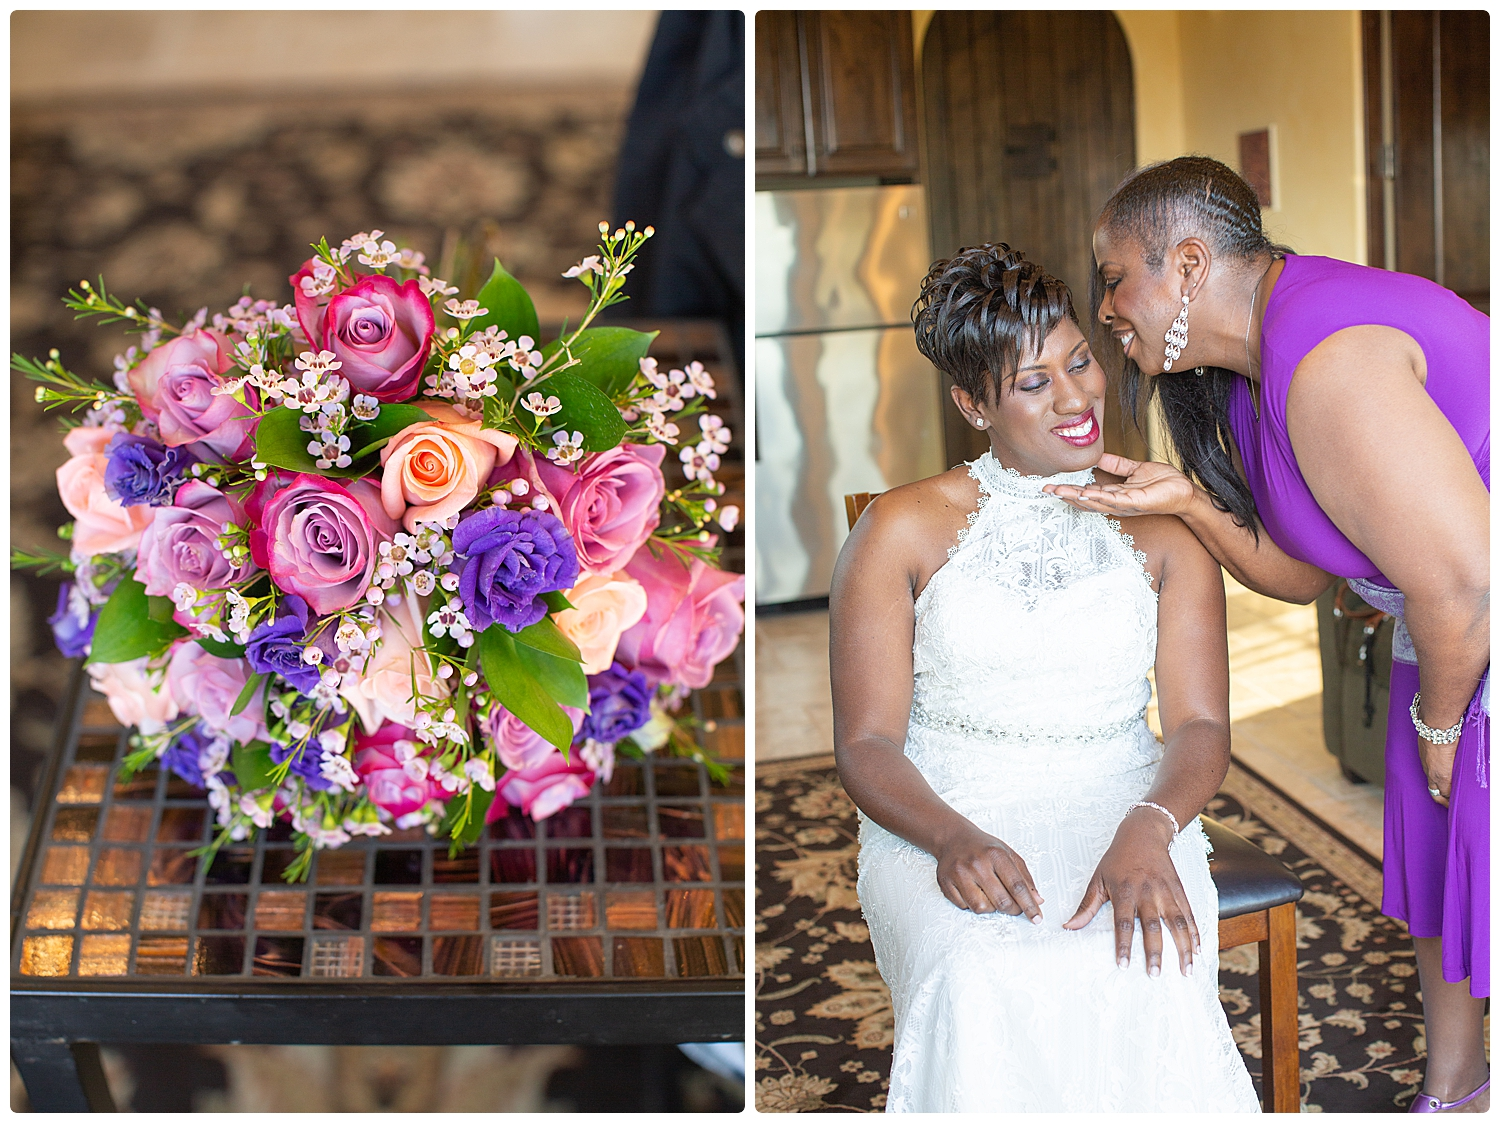 New Years Eve intimate wedding_Renoda Campbell Photography_LGBT wedding_0051.jpg